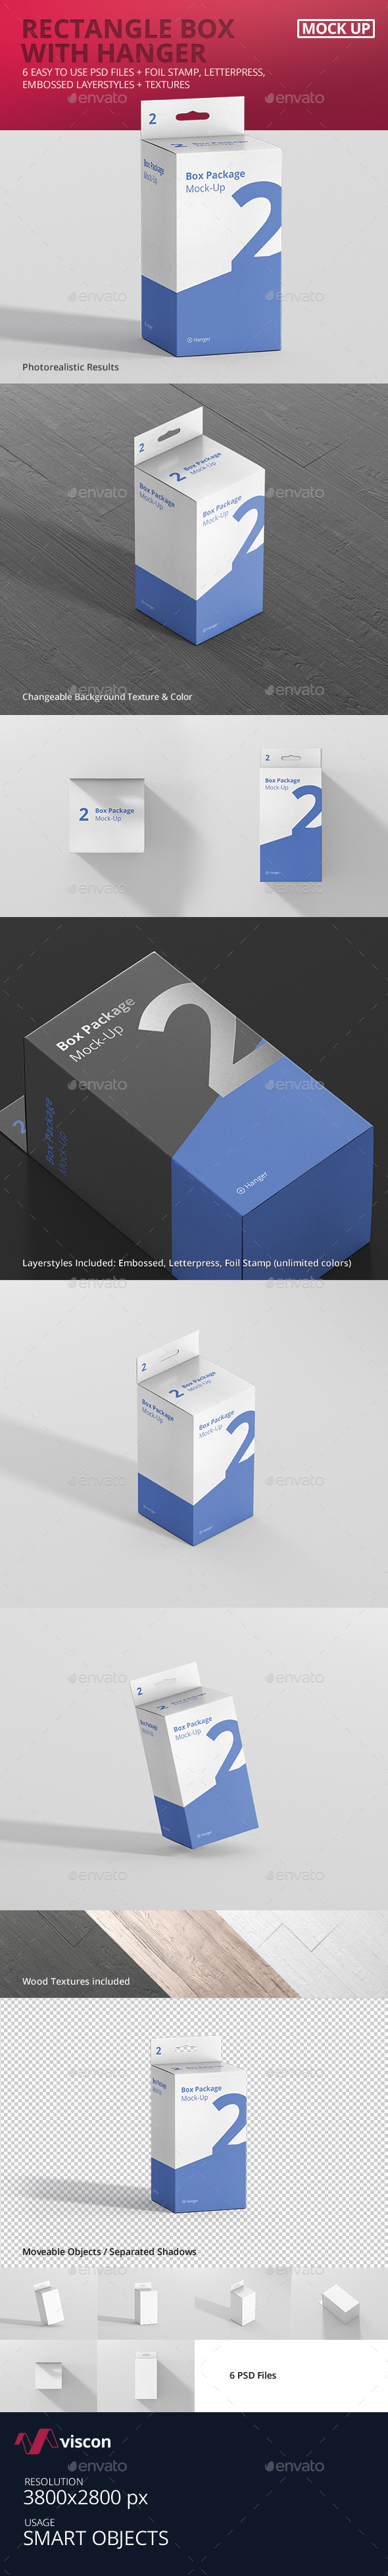 Package Box Mockup - Rectangle with Hanger